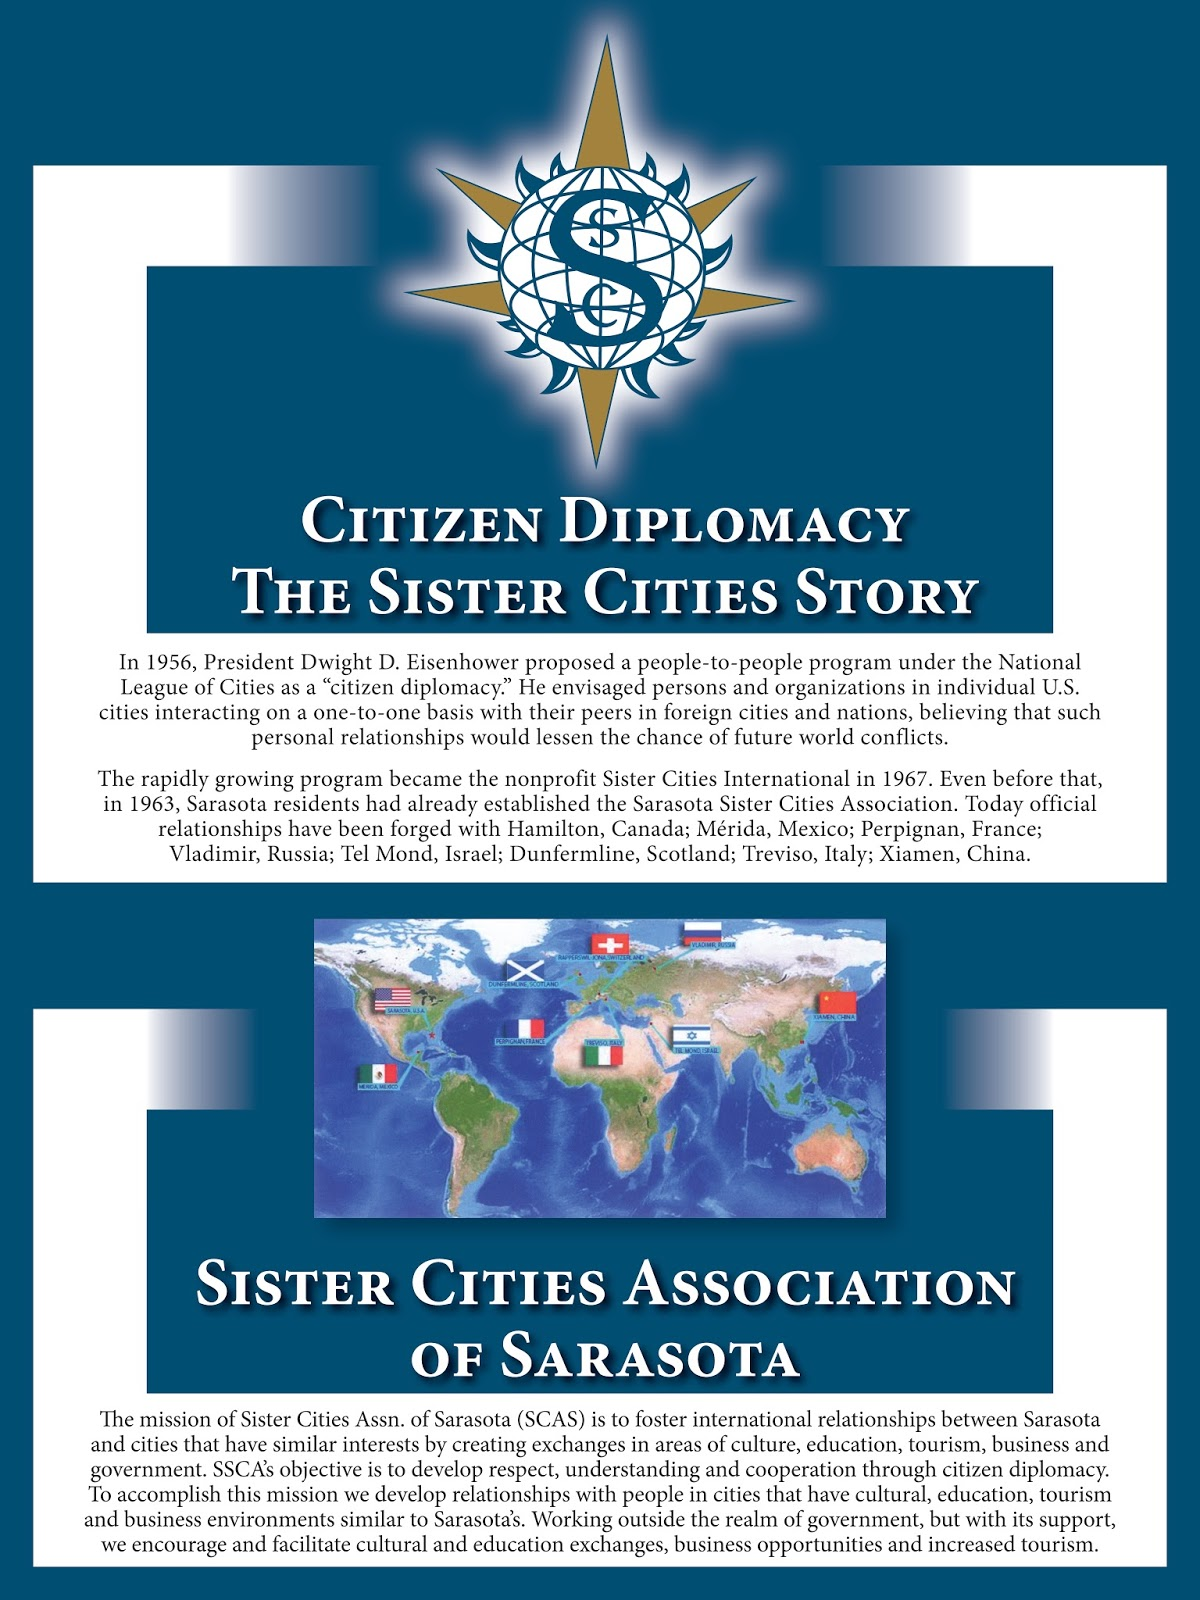 Citizen Diplomacy - Click Twice To Enlarge